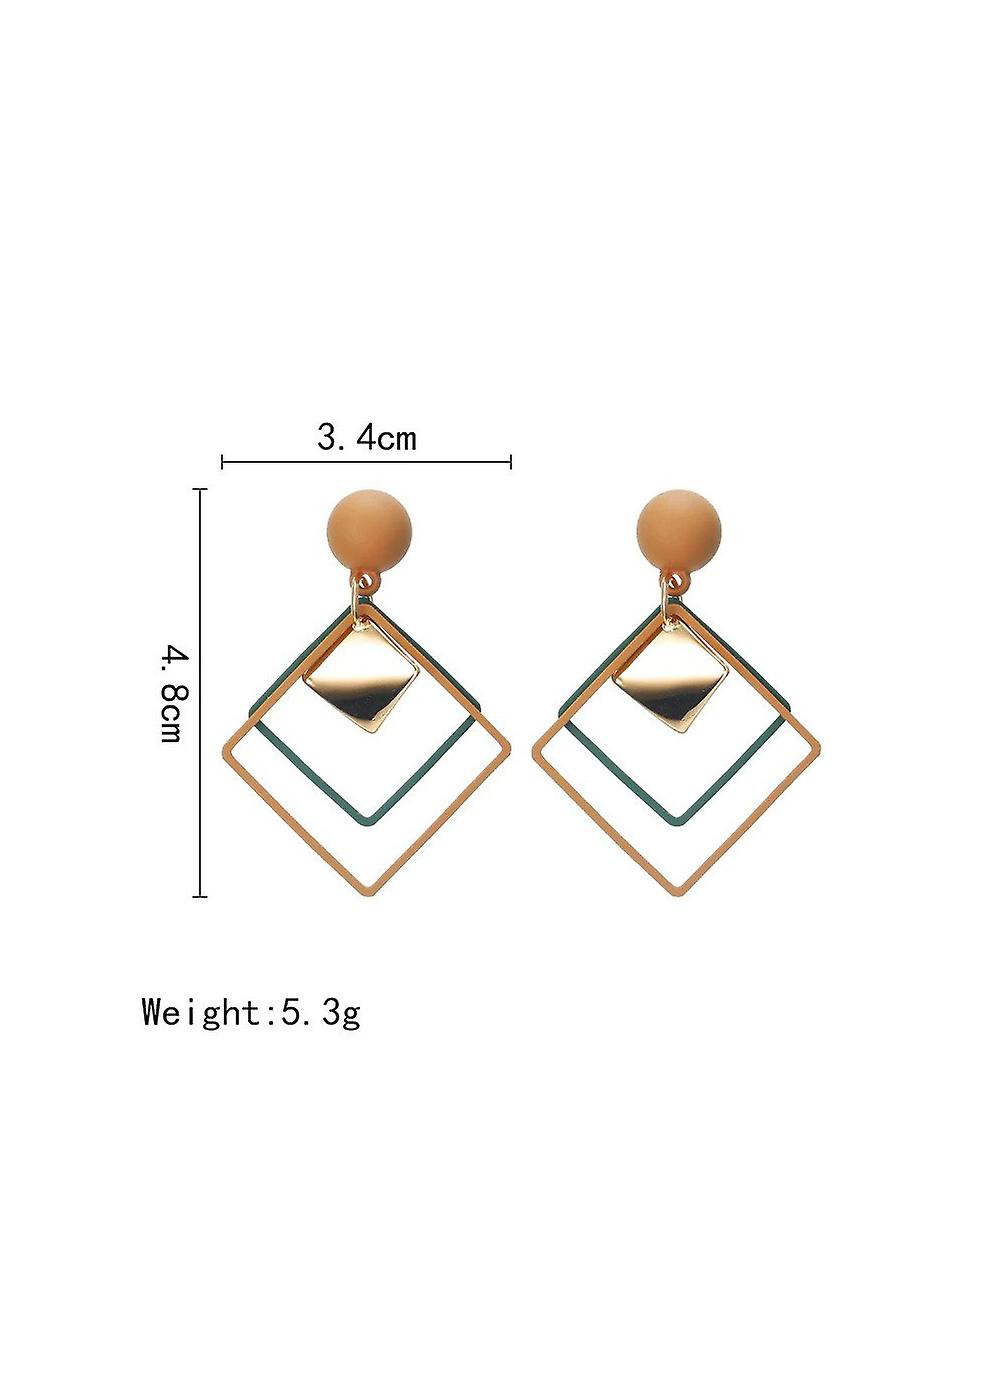 Square Hollow Drop Earrings - Brown and Blue